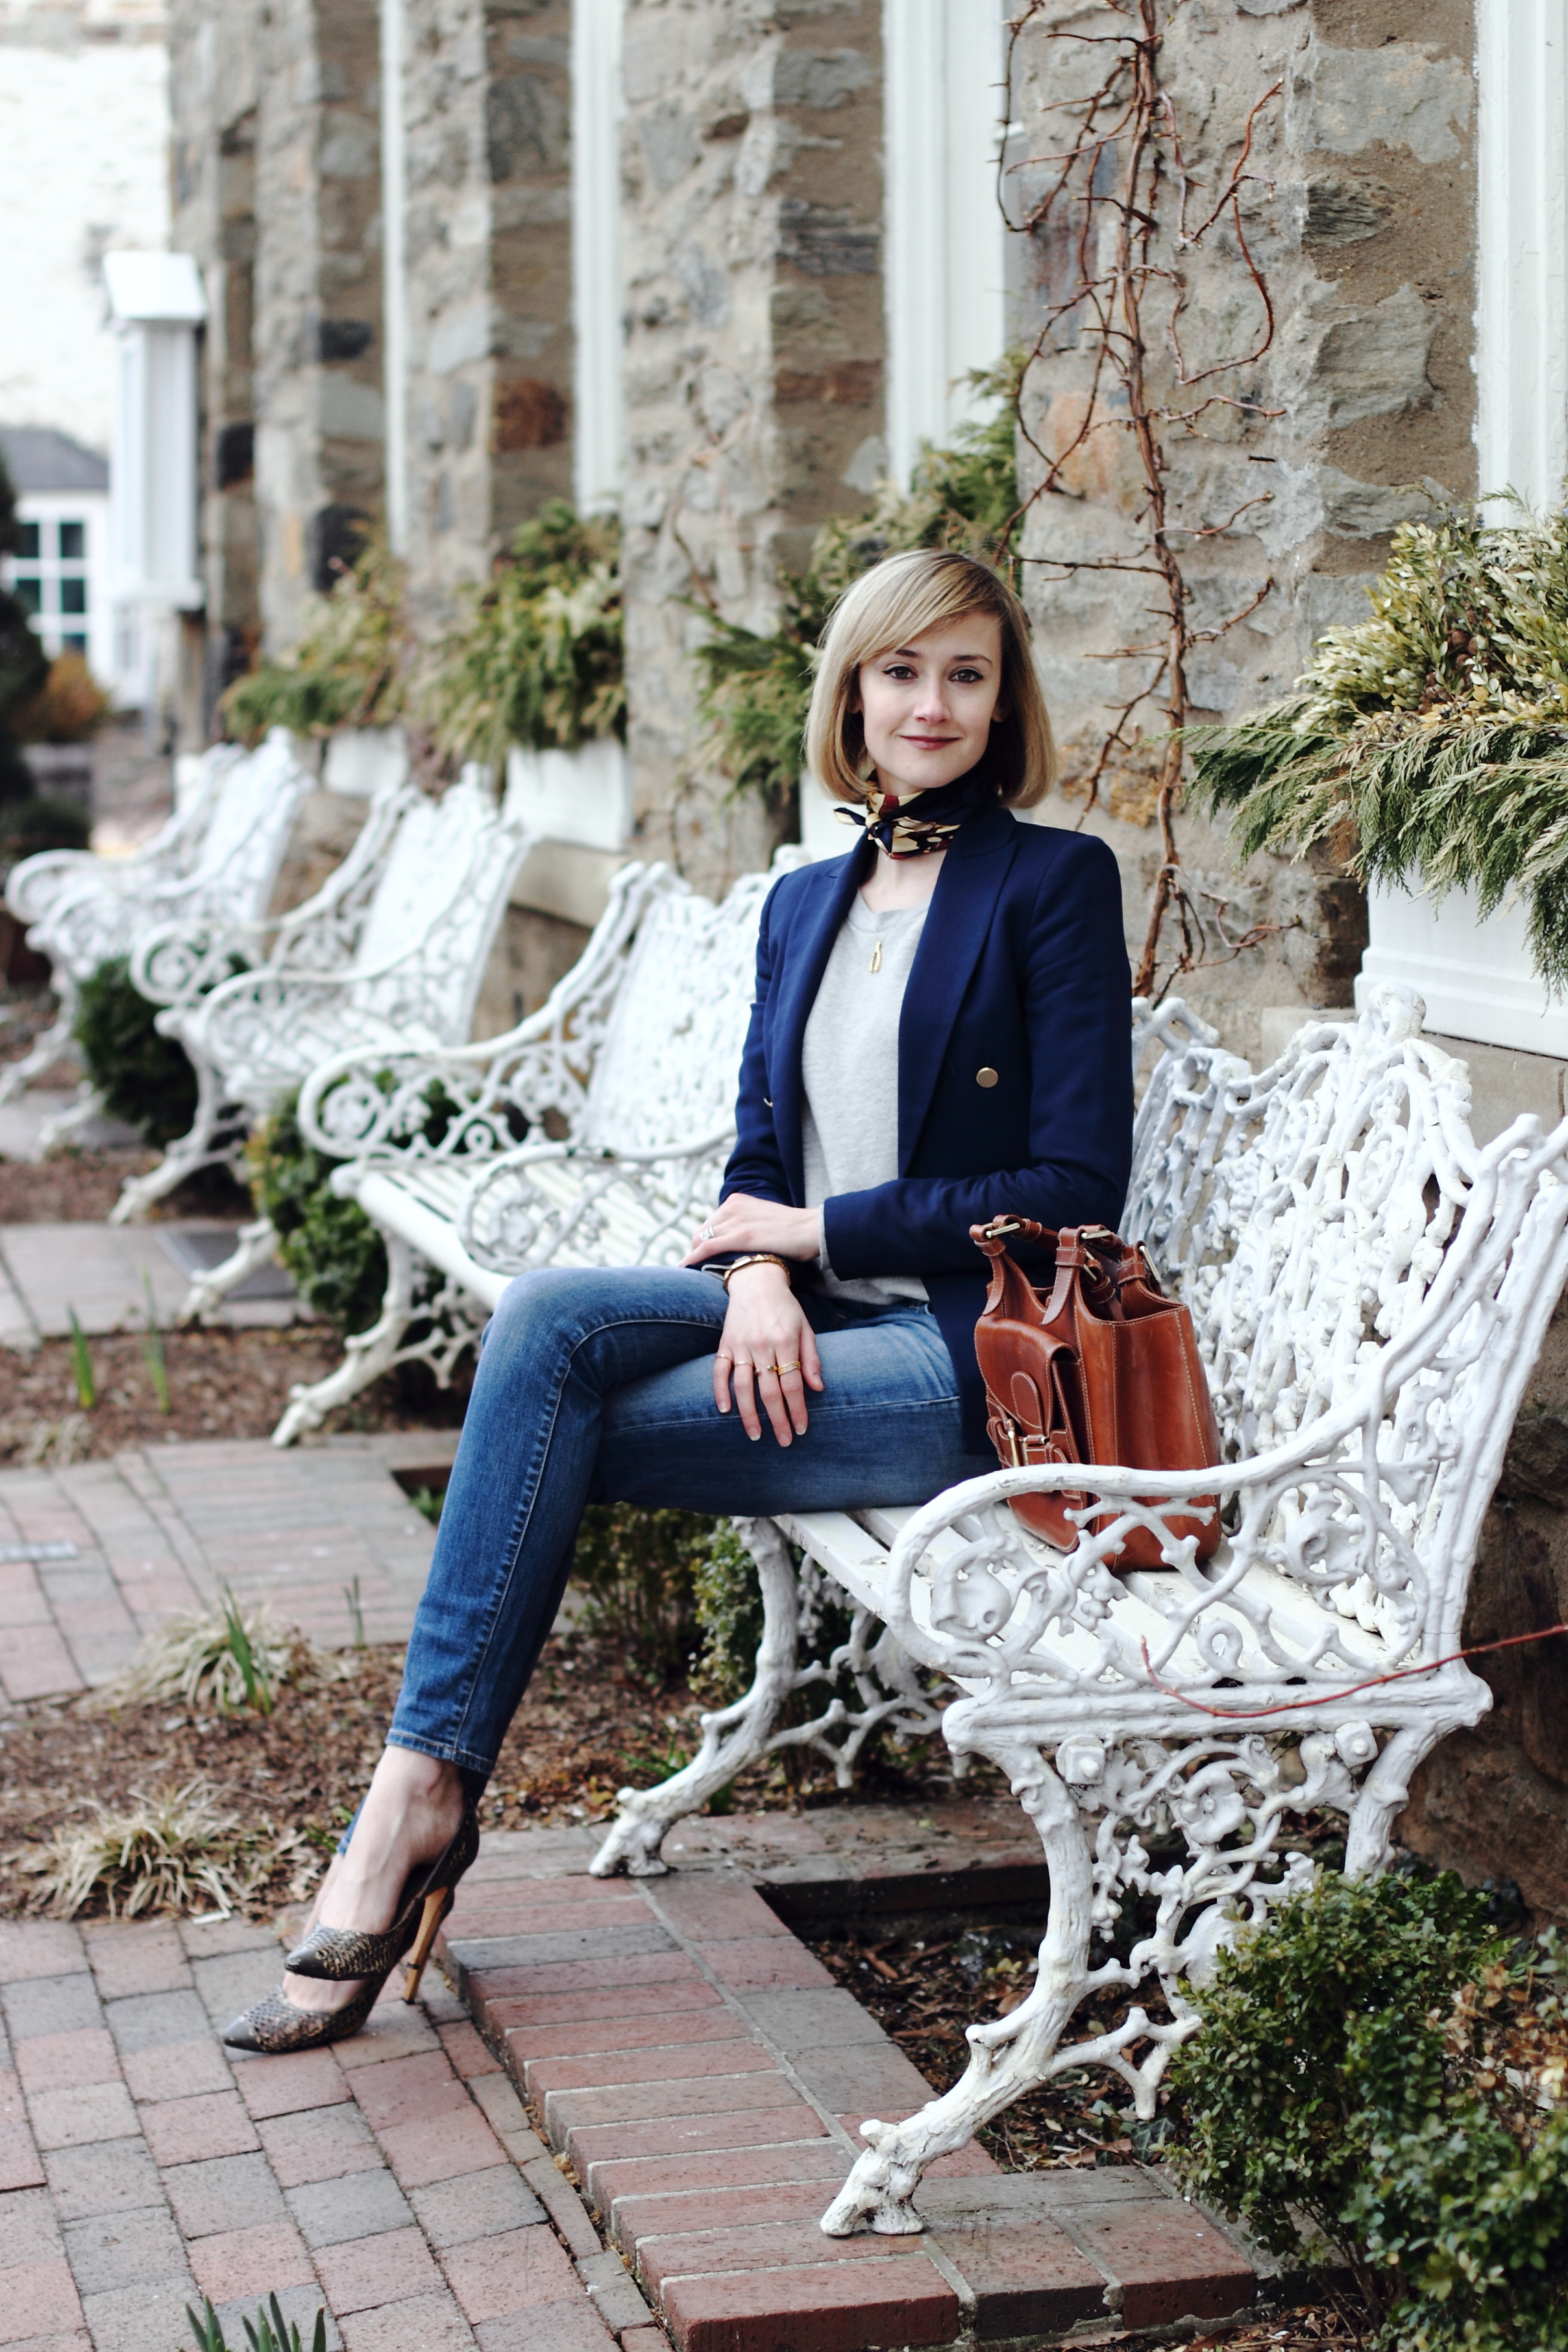 District of Chic: afternoon shopping in Middleburg, Virginia